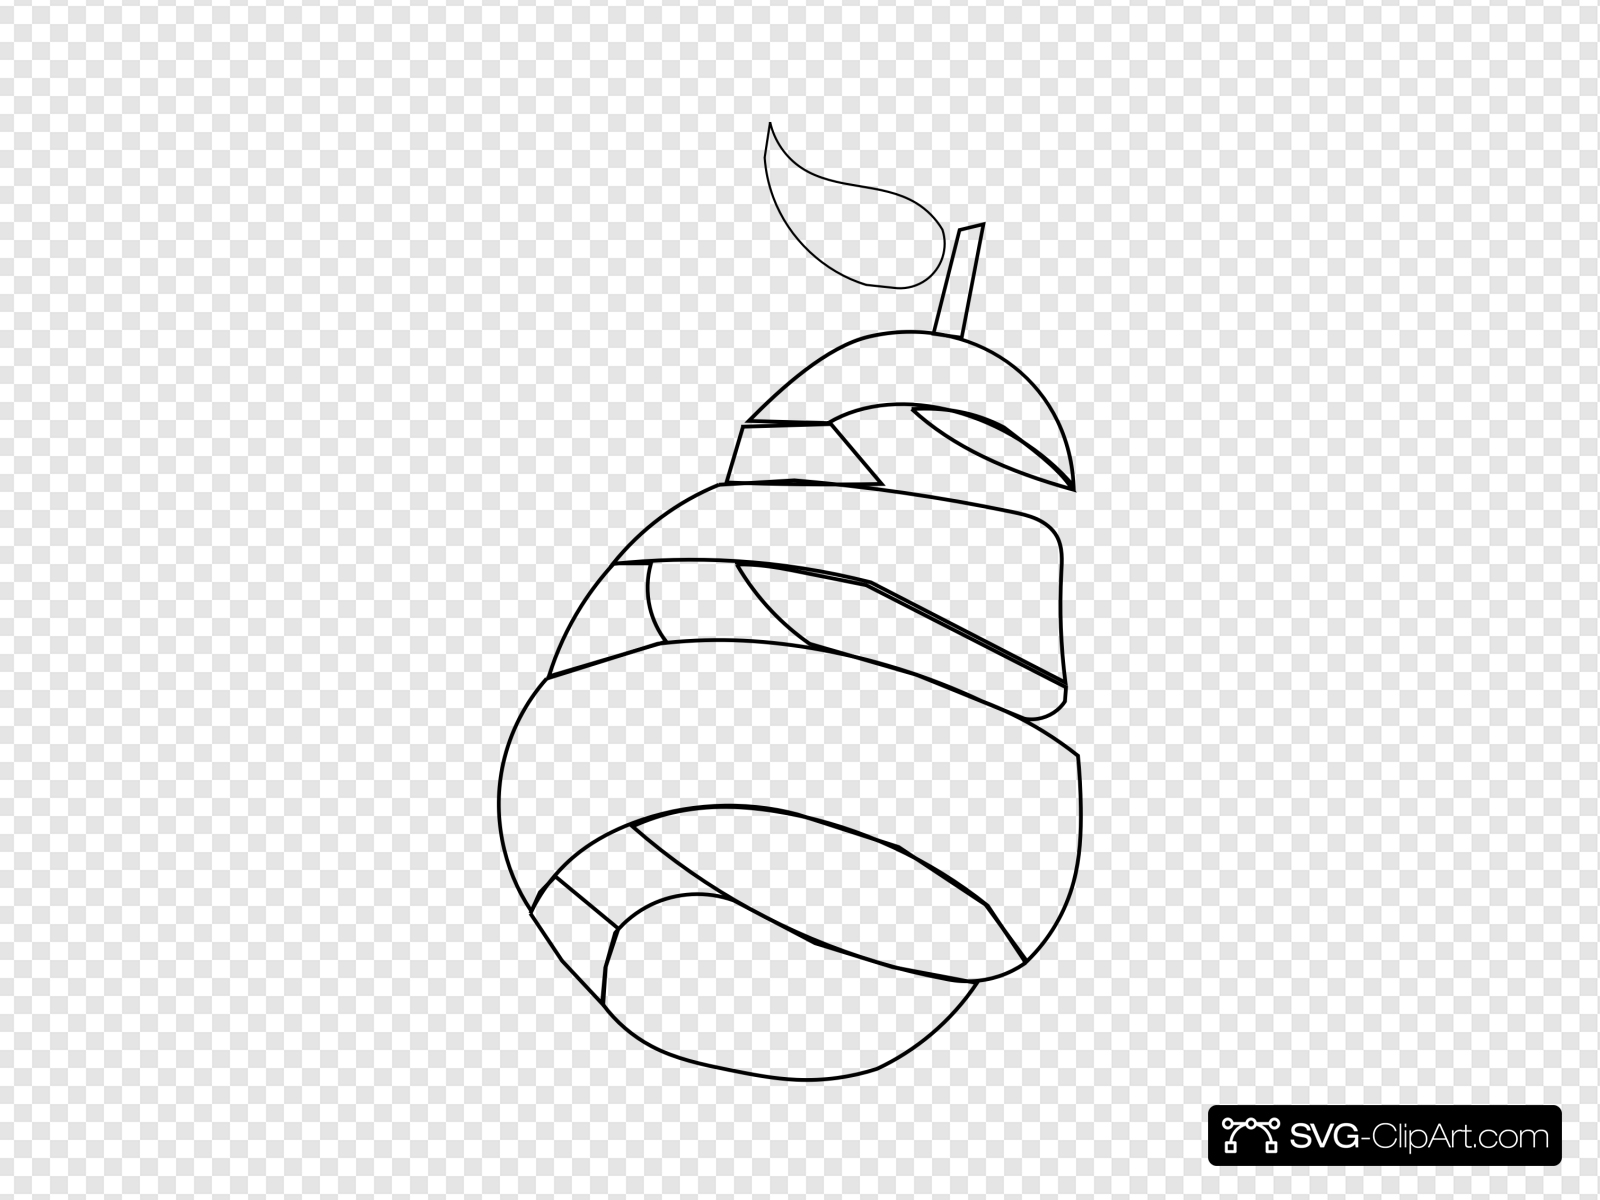 Pear Outline Clip art, Icon and SVG.